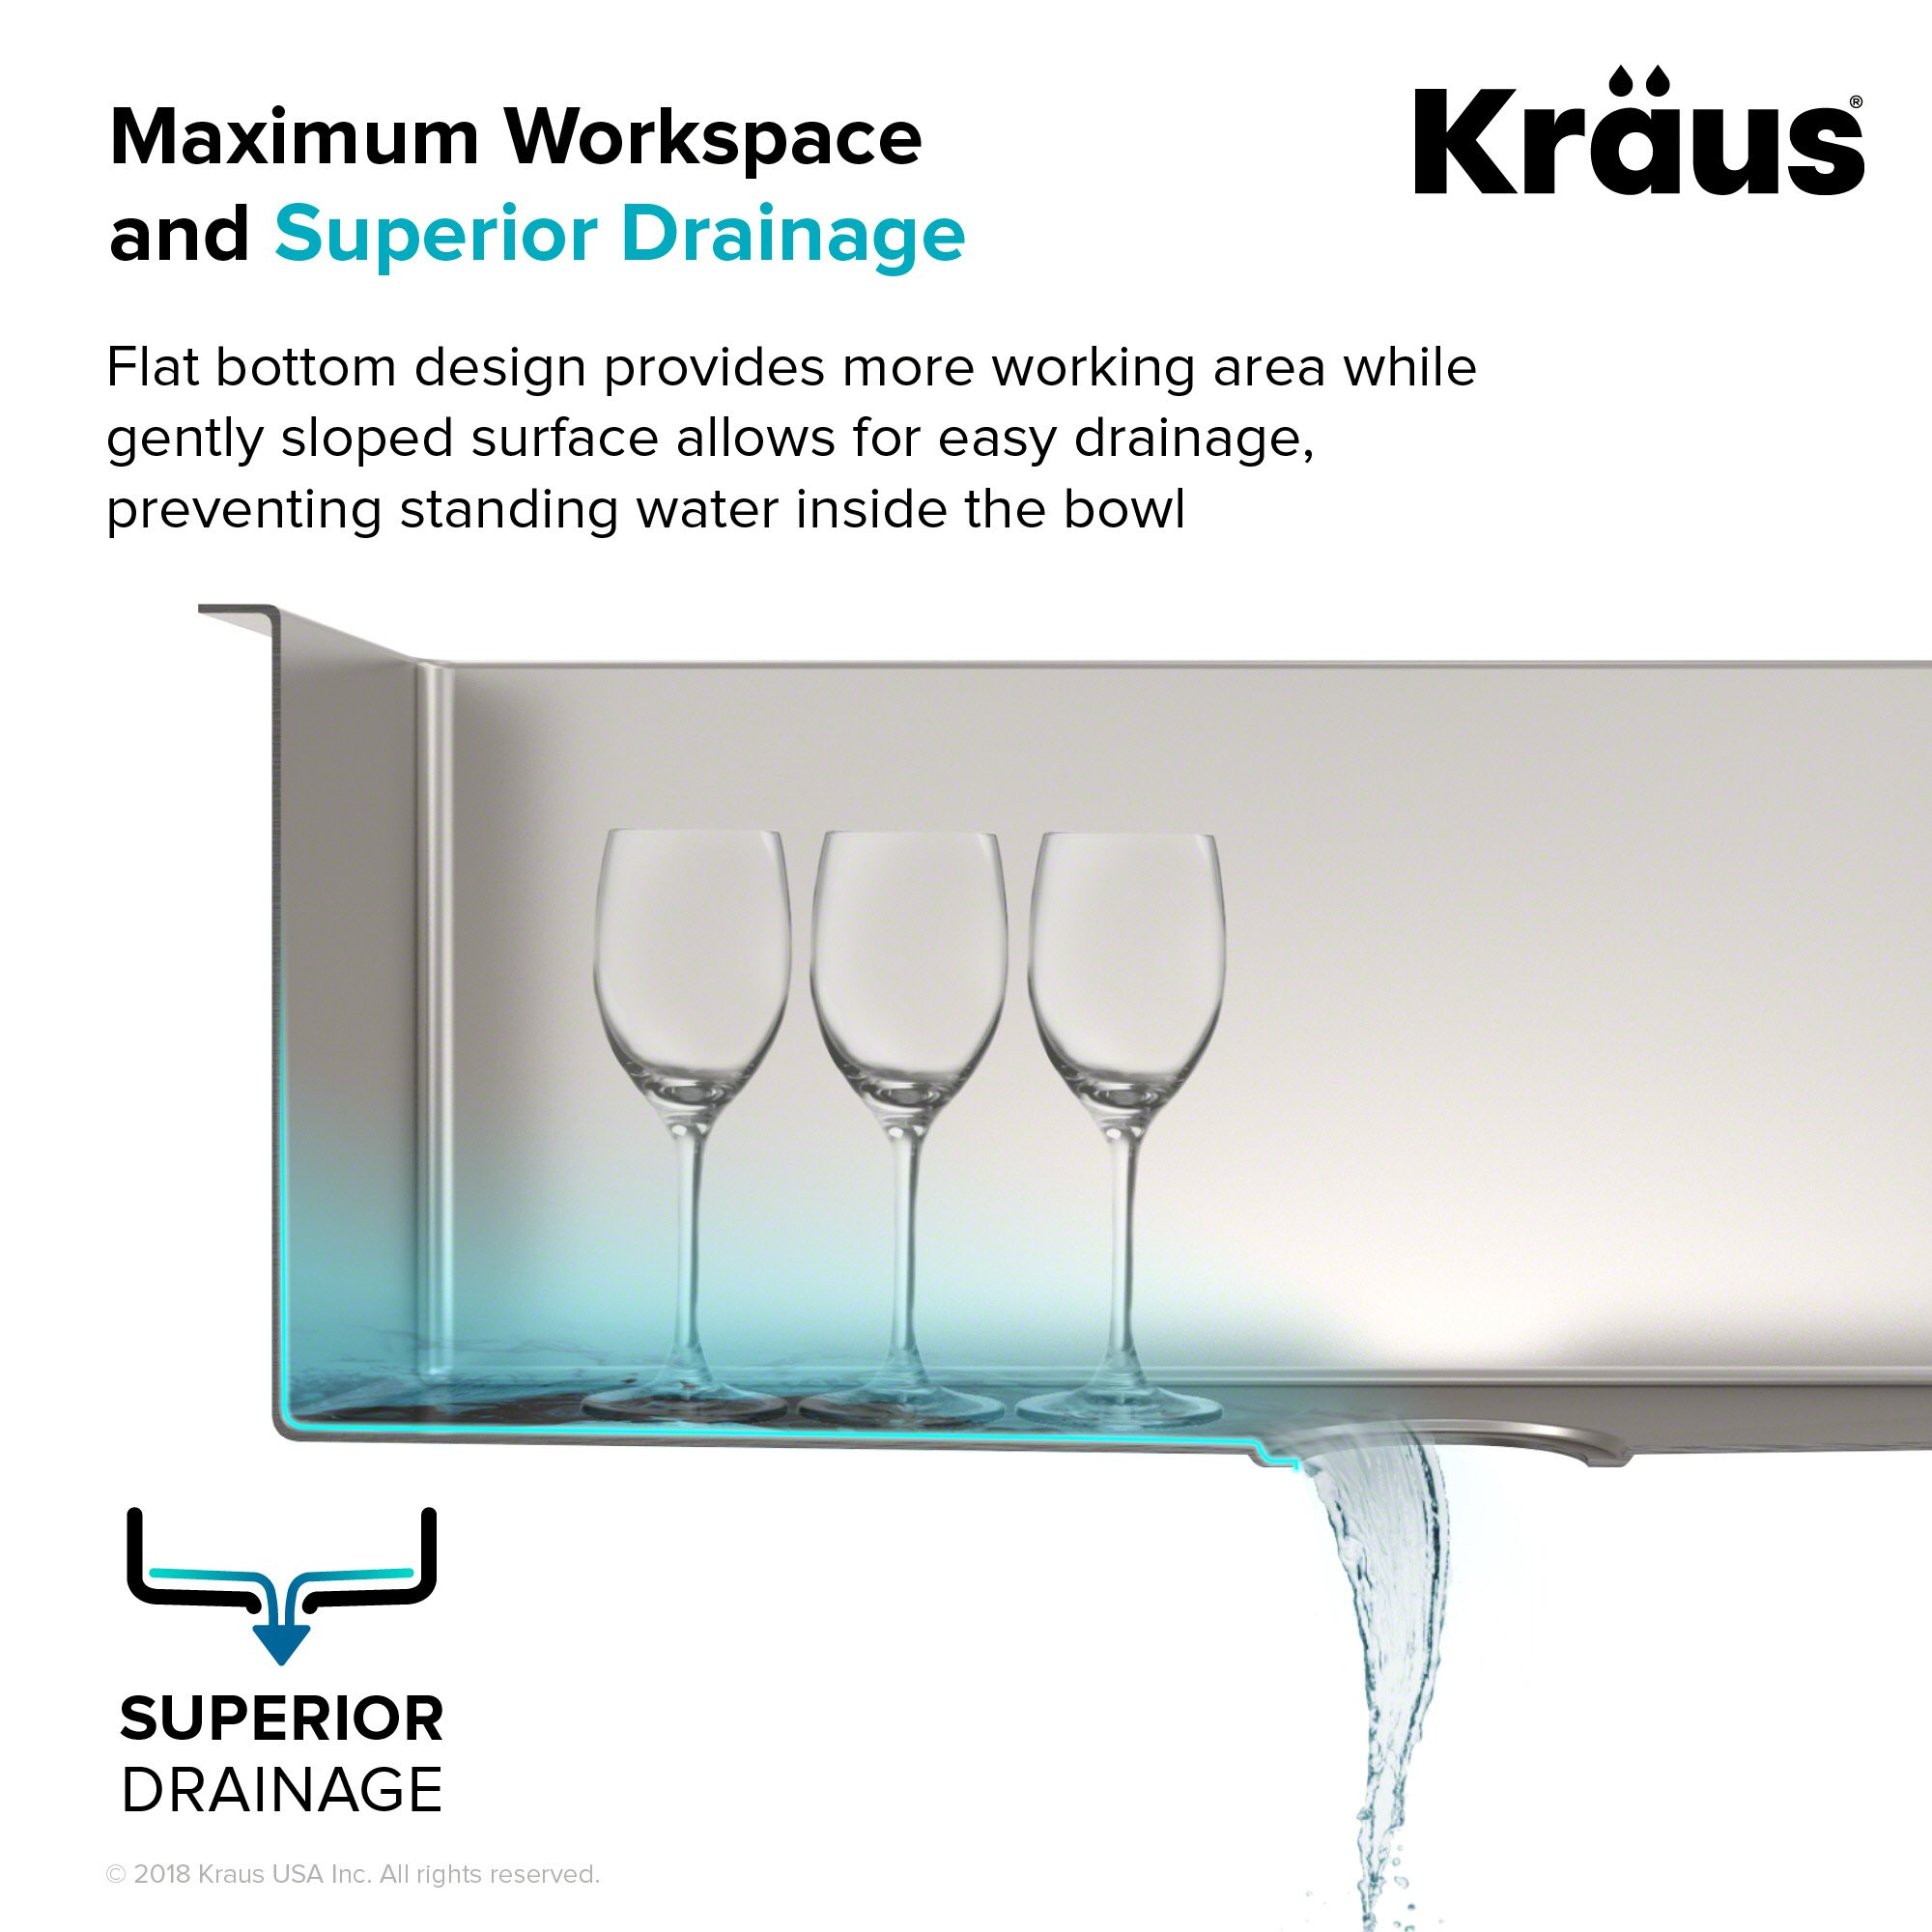 bd6d465574 Kraus Standart PRO 33-inch 16 Gauge Undermount 60/40 Double Bowl Stainless  Steel Kitchen Sink, KHU103-33 - KHU103-33-R20 < Double Bowl < Tools & Home  ...